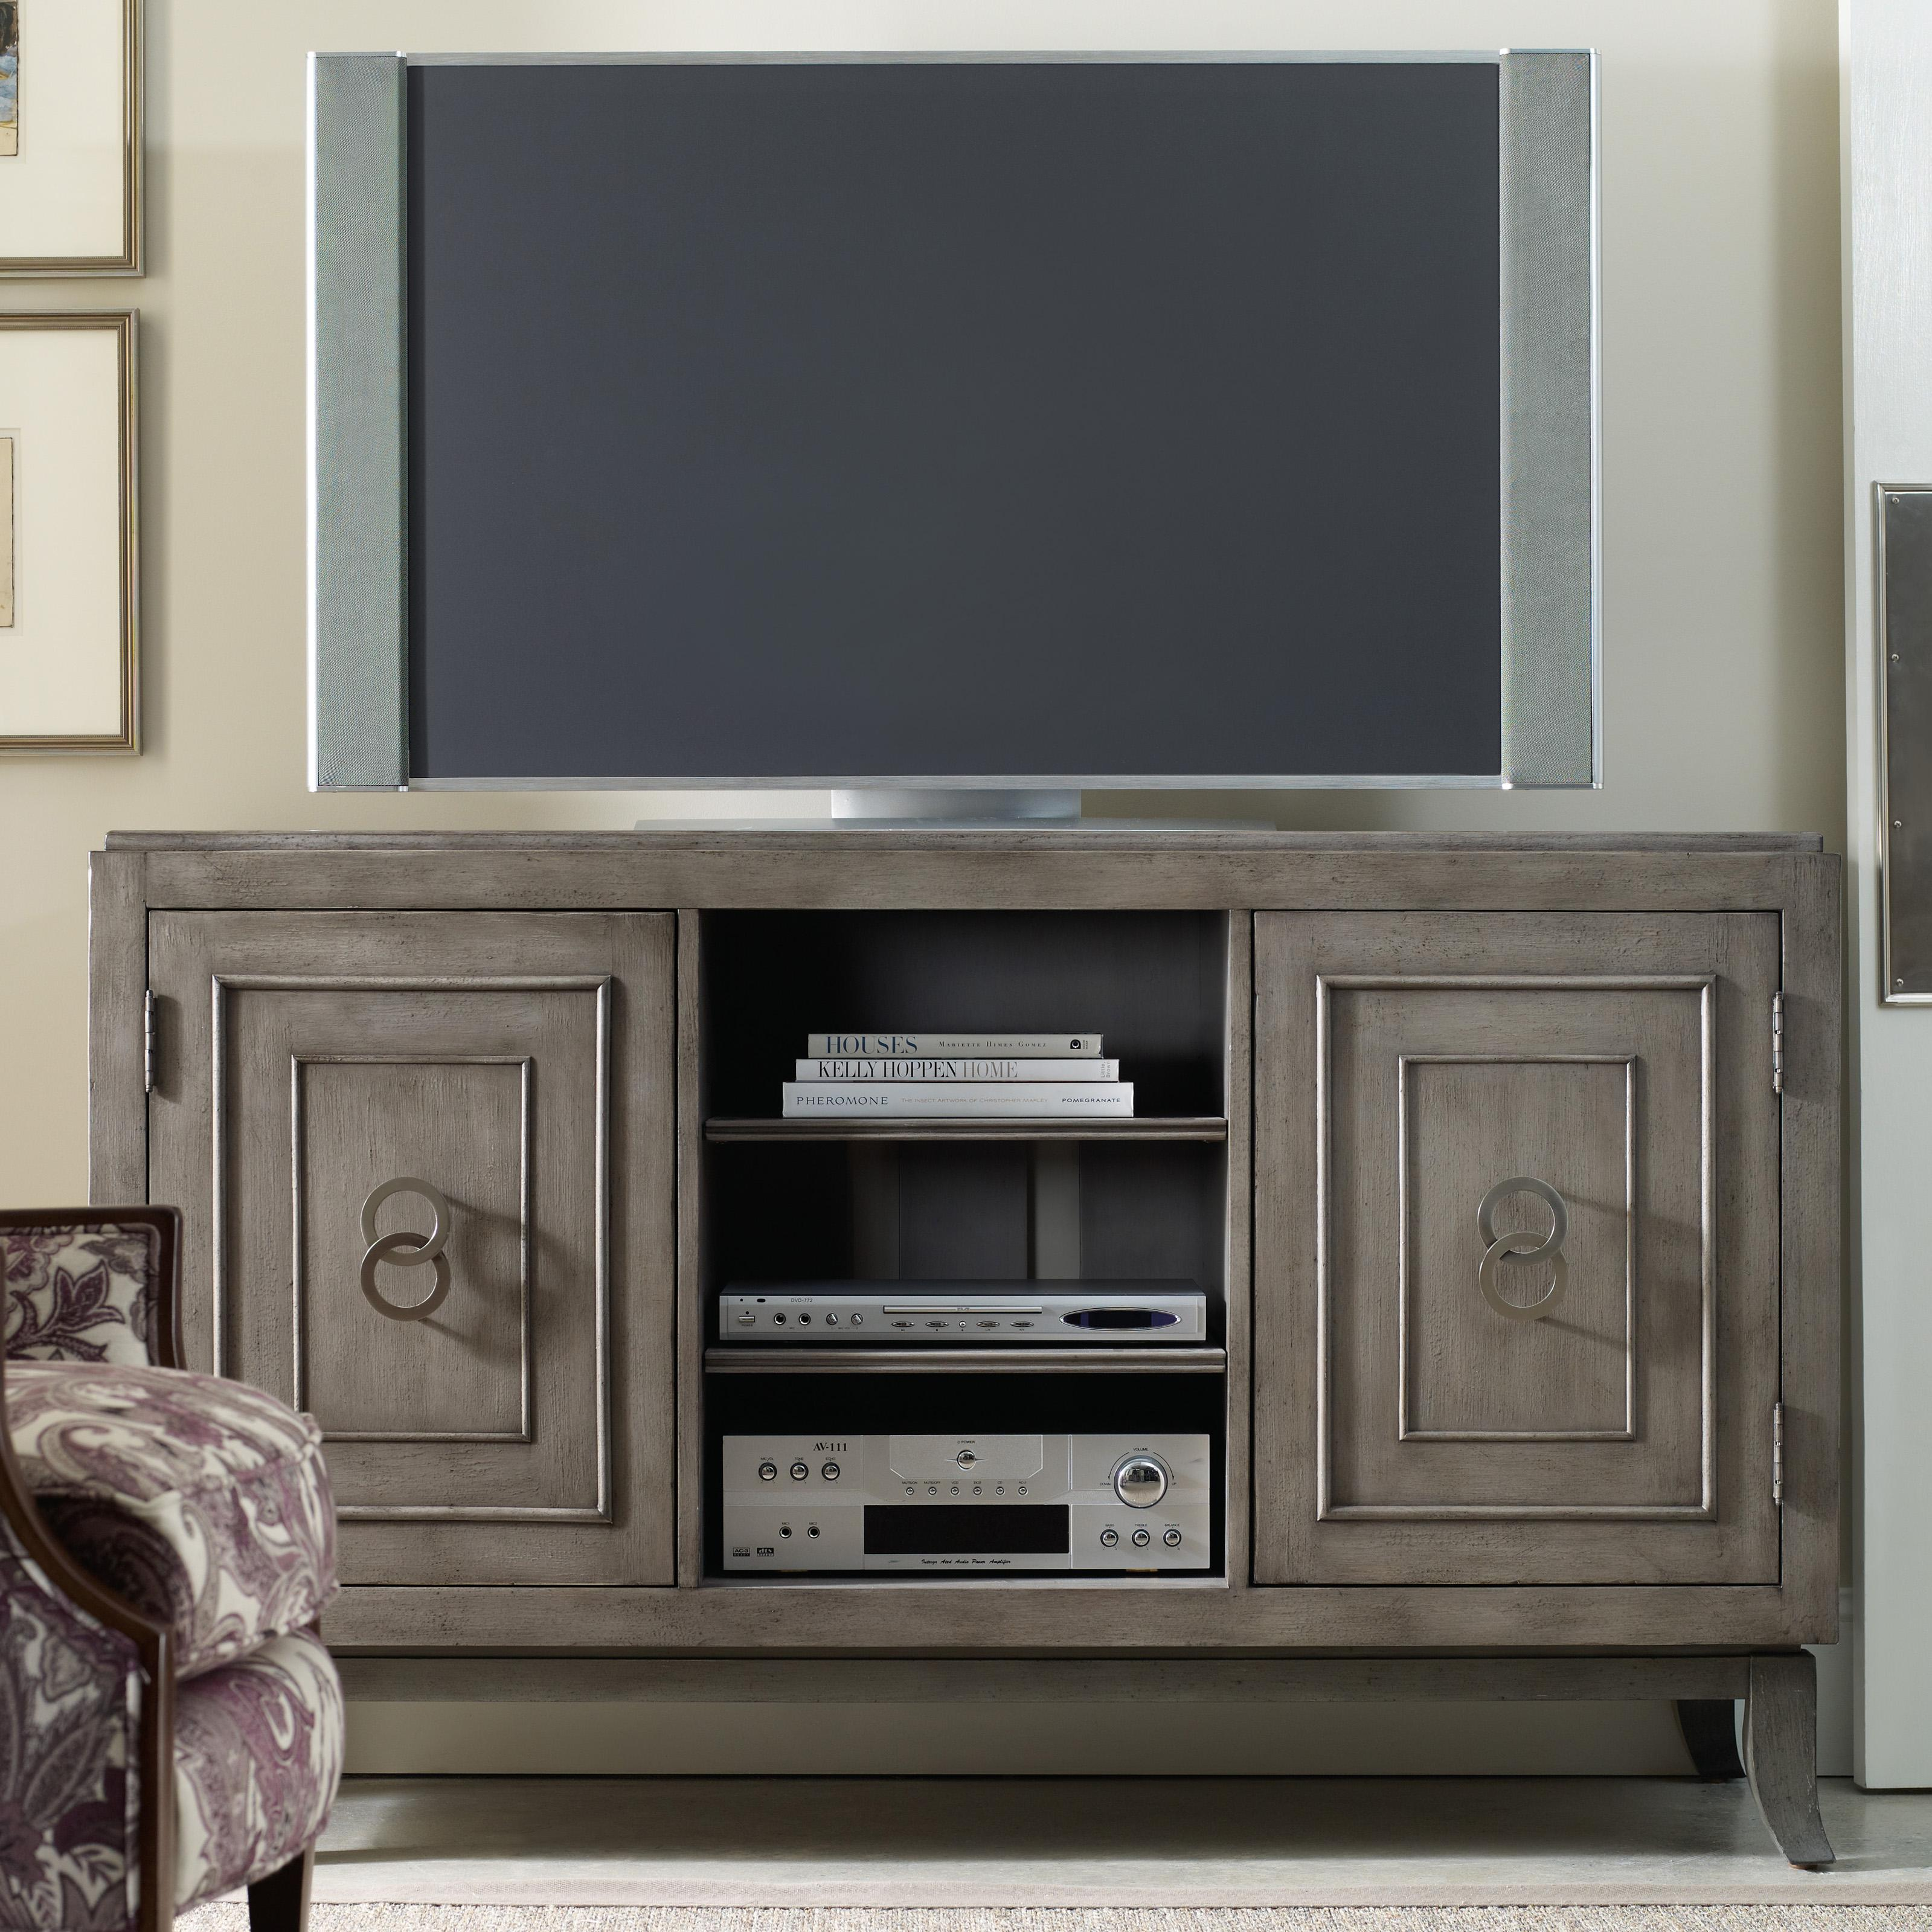 Hooker Furniture Seven Seas 60-Inch Entertainment Console - Item Number: 500-55-123